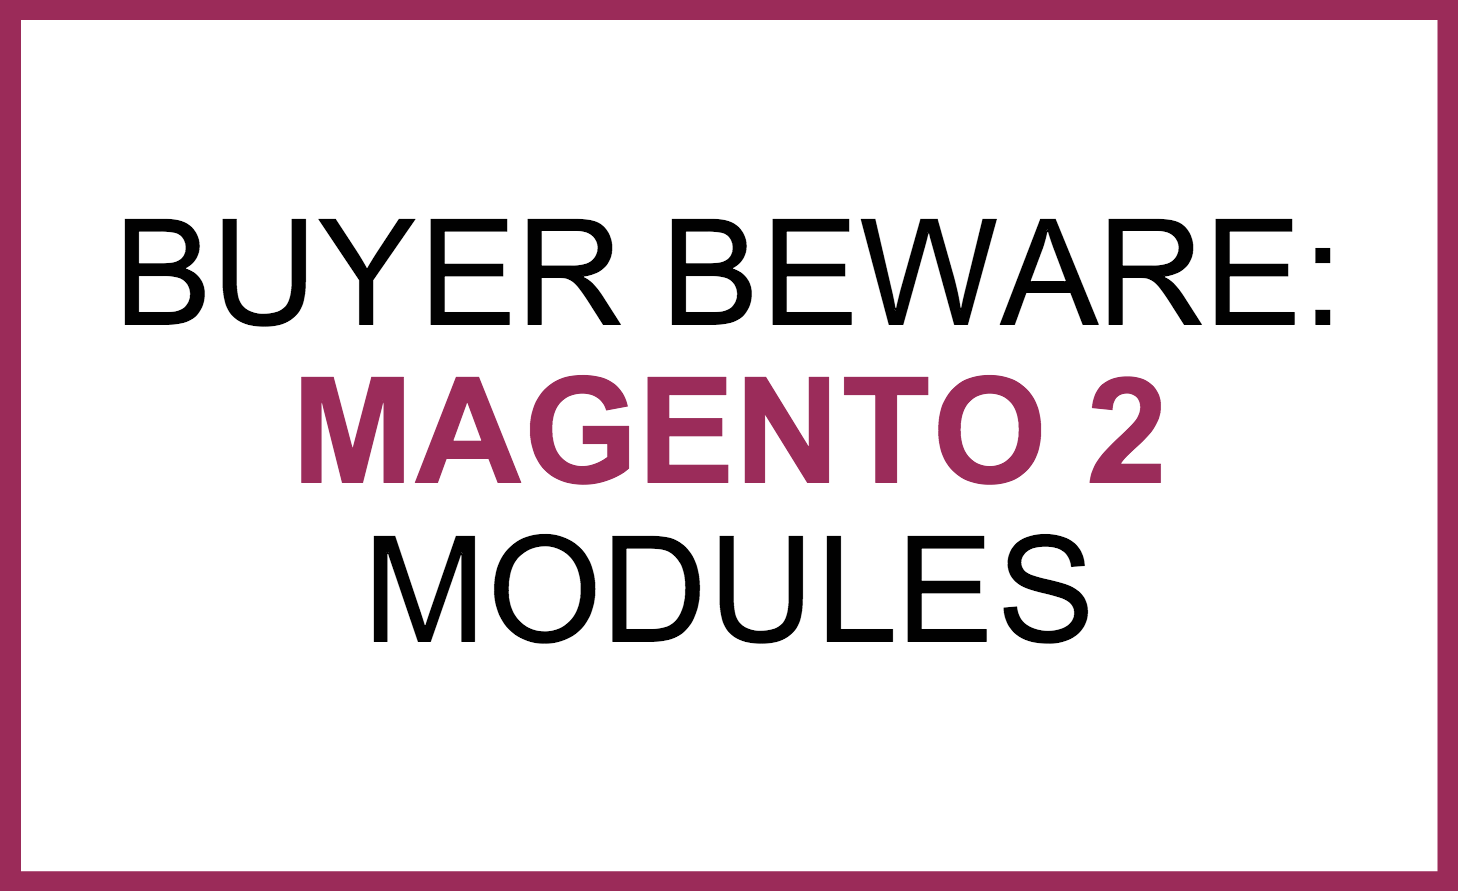 magento 2 modules.png